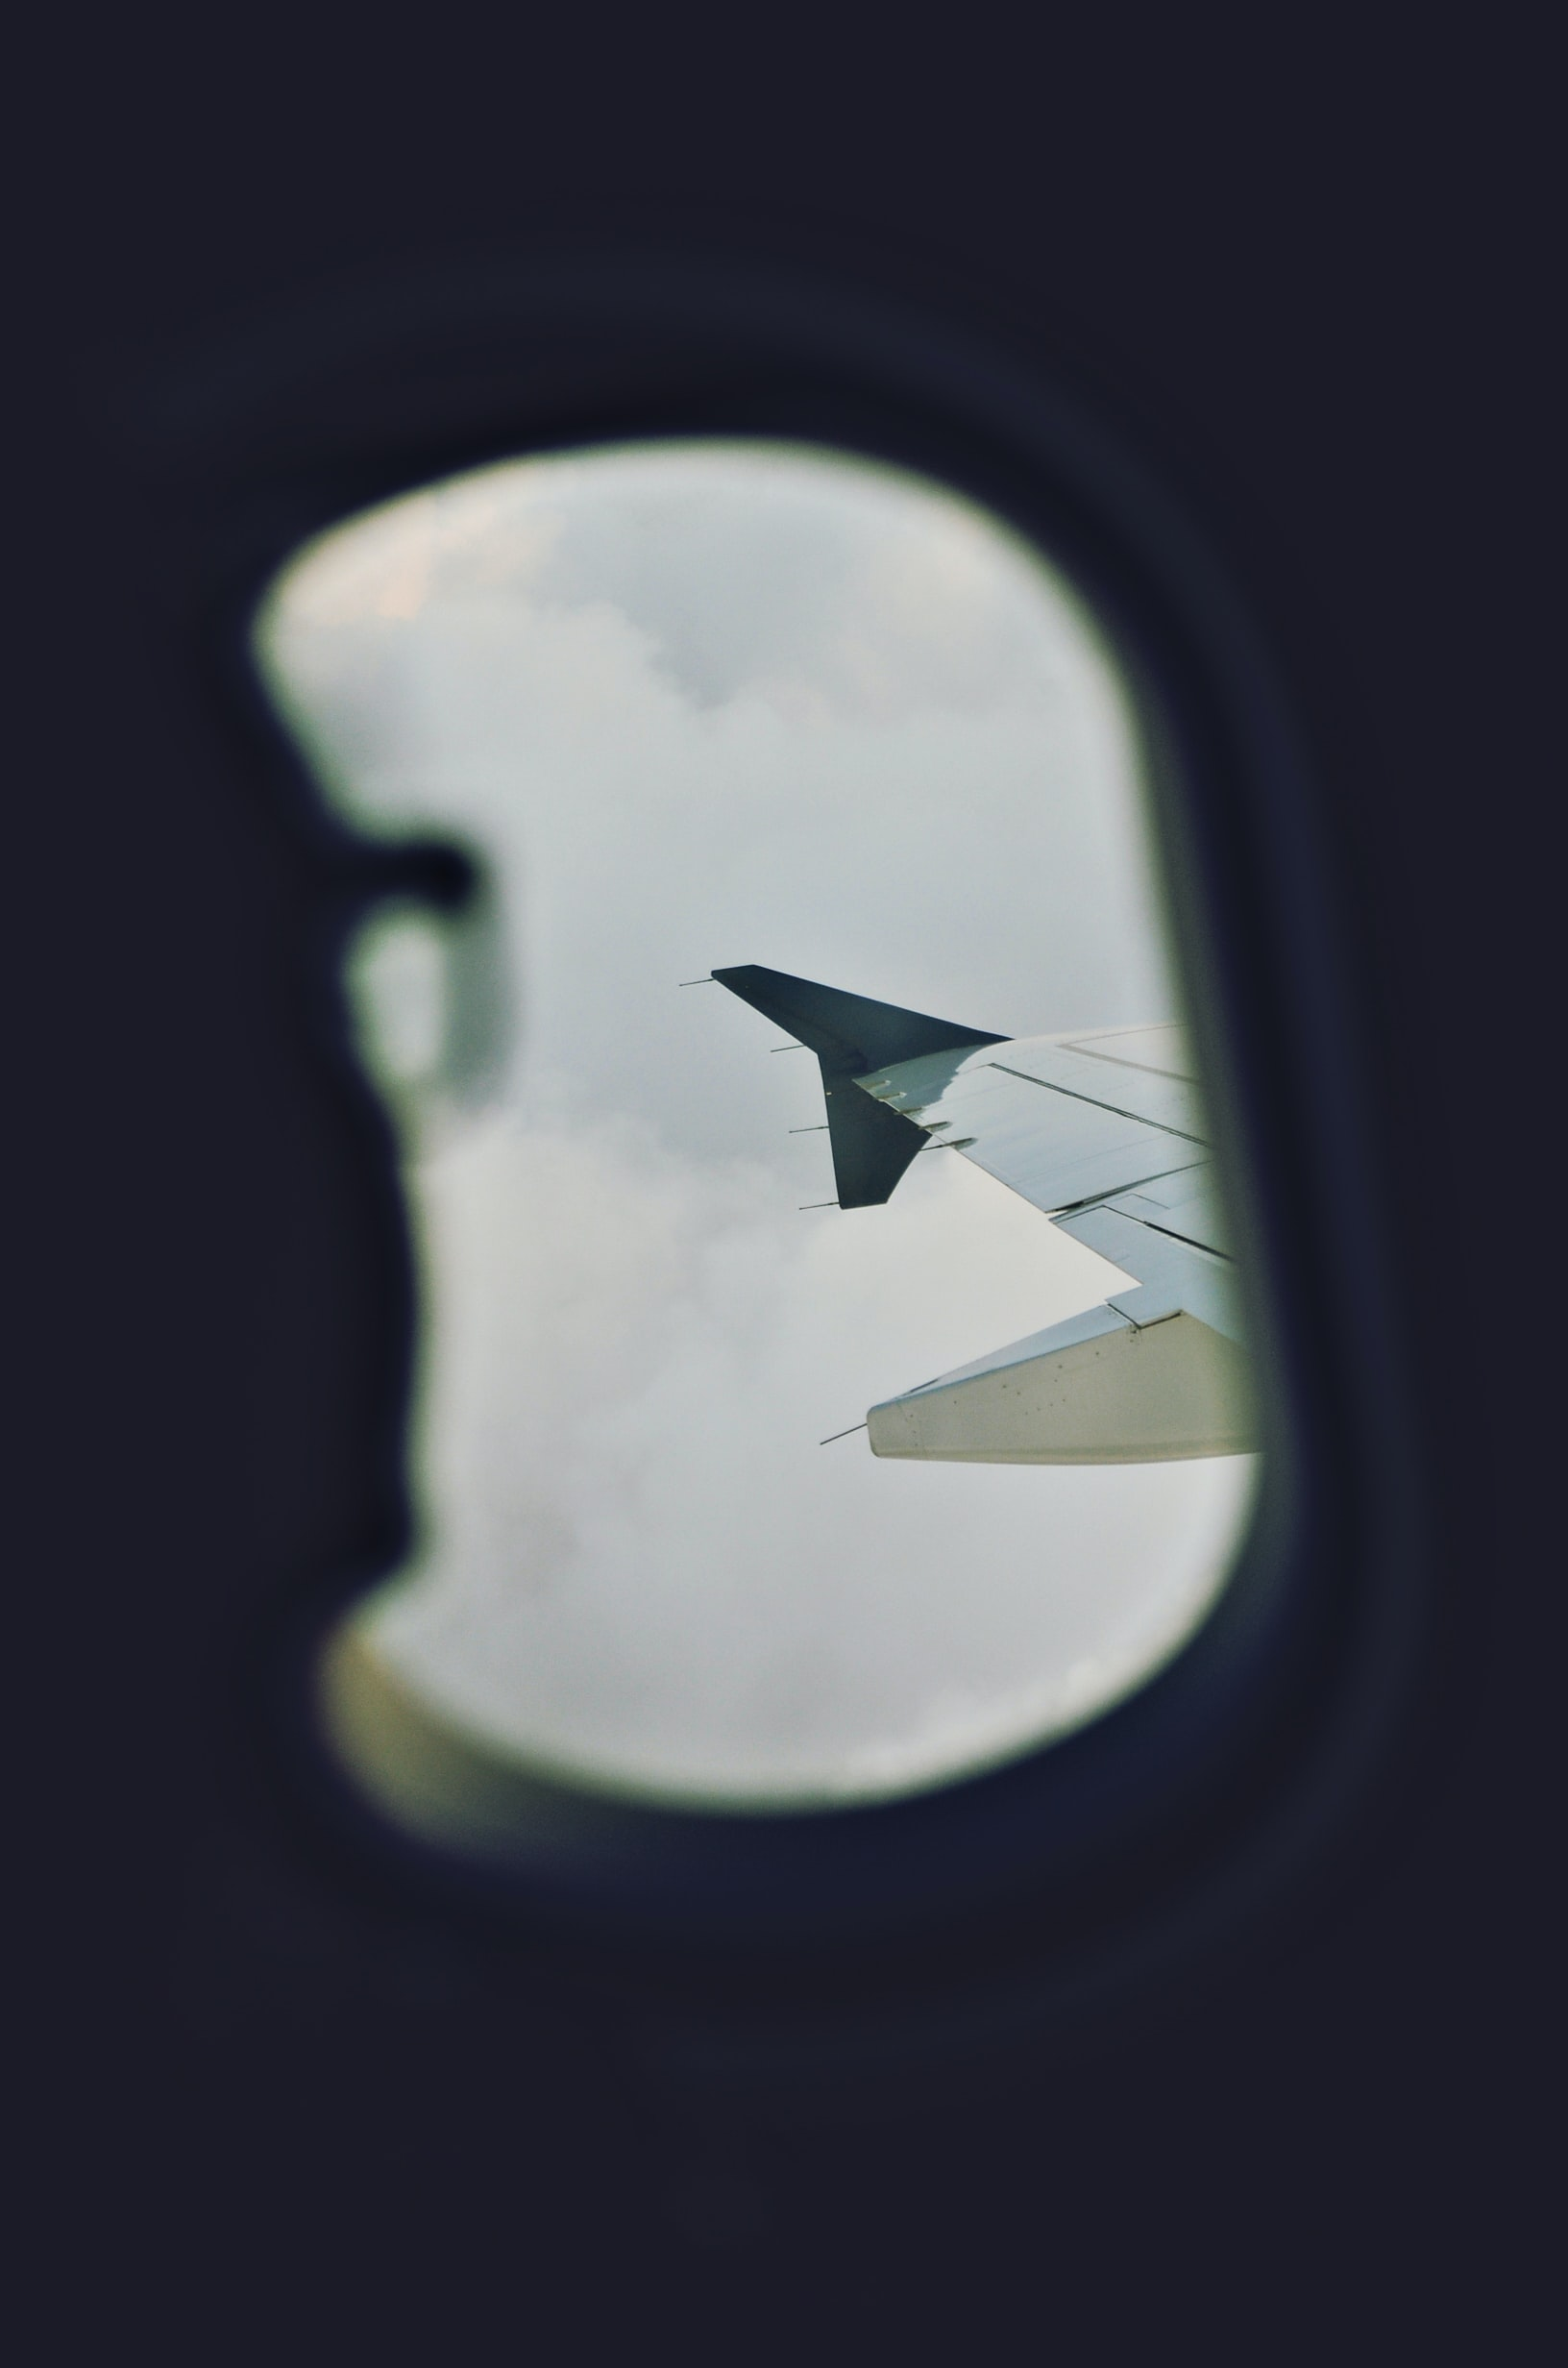 passenger view of airplane window